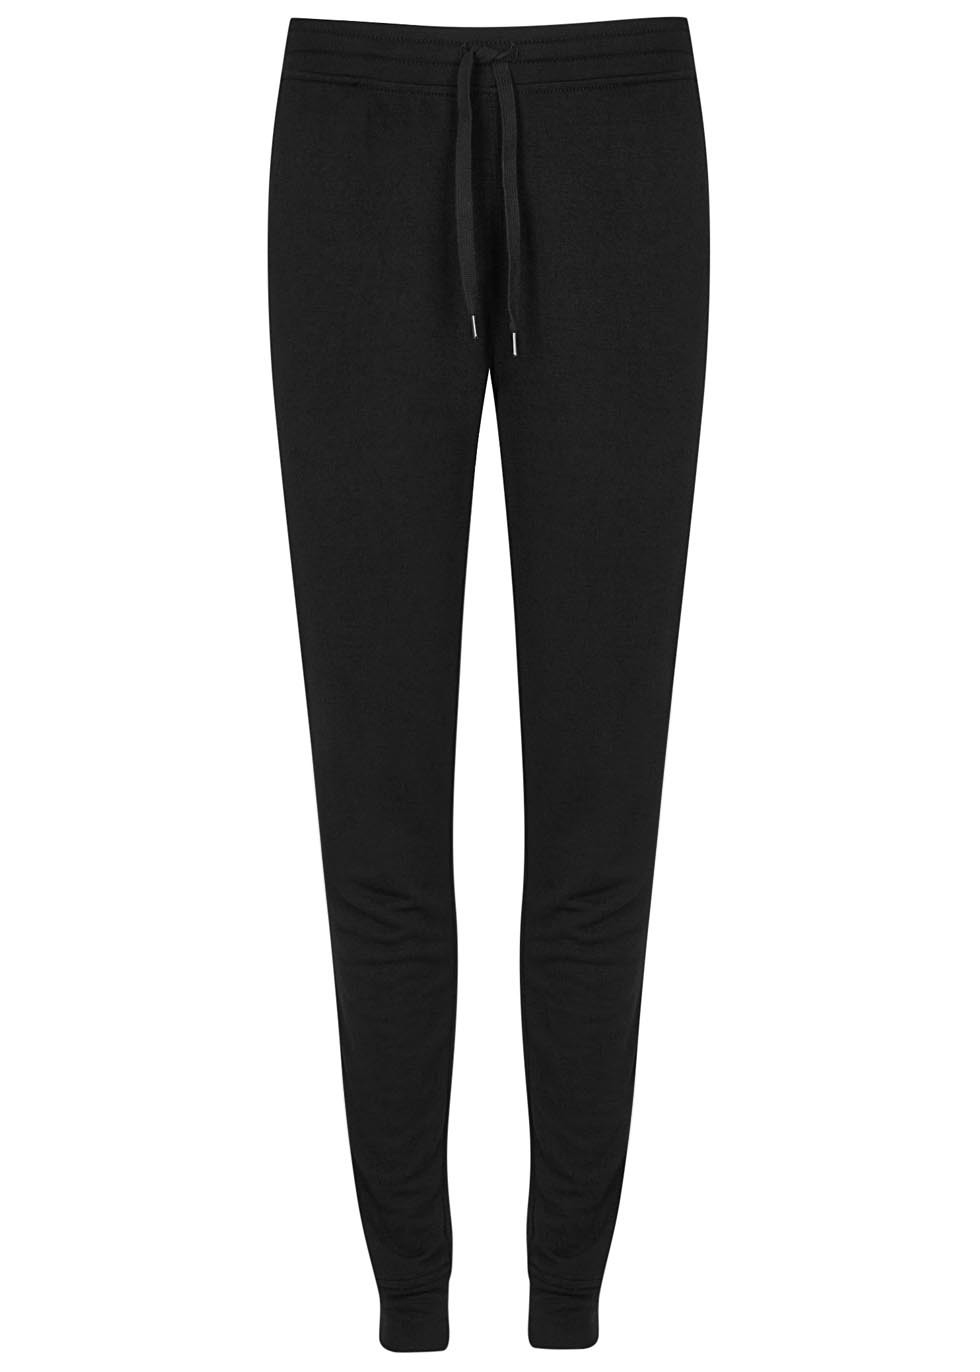 Black Washed Terry Jogging Trousers - length: standard; pattern: plain; style: tracksuit pants; waist detail: elasticated waist; waist: mid/regular rise; predominant colour: black; occasions: casual; fibres: polyester/polyamide - mix; fit: tapered; pattern type: fabric; texture group: jersey - stretchy/drapey; season: s/s 2016